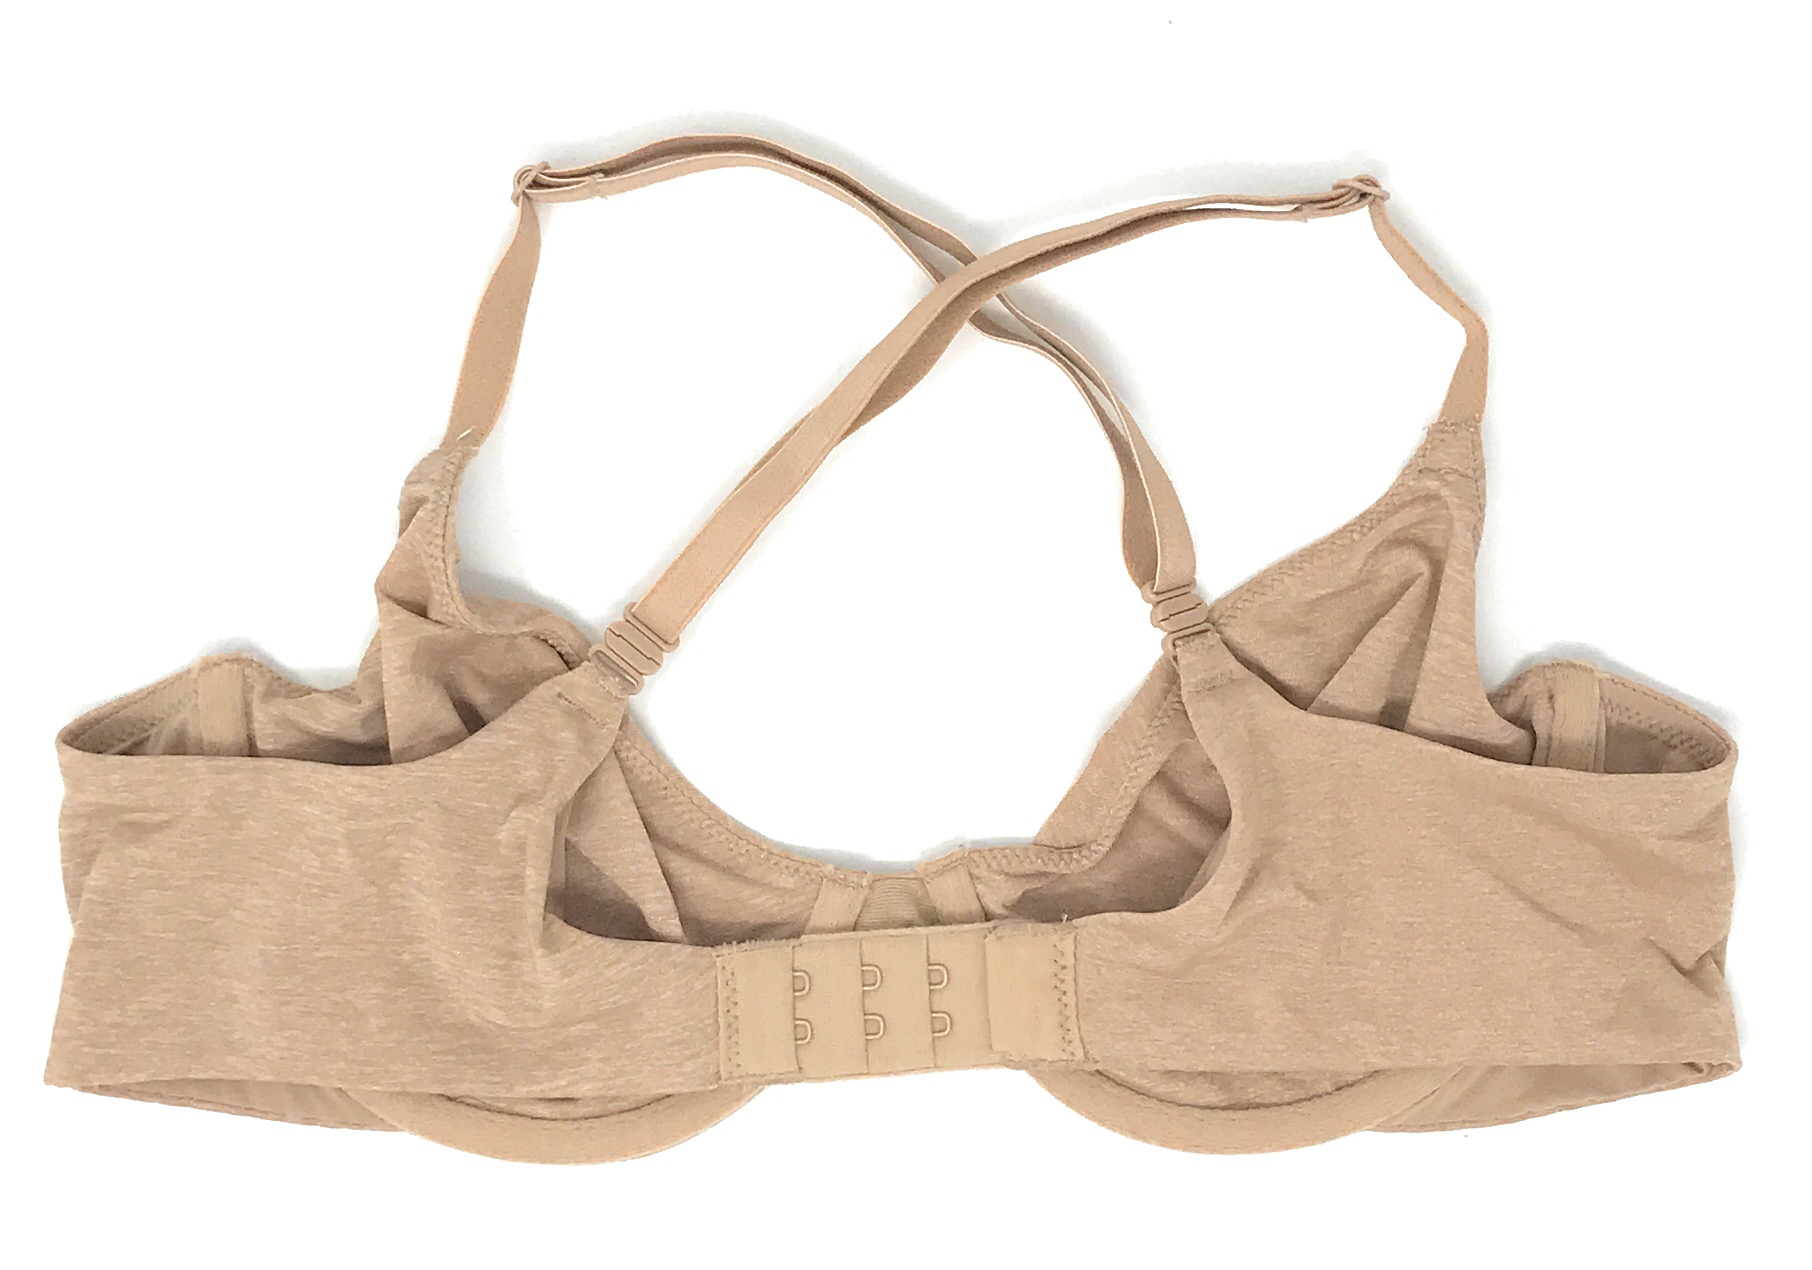 4d704b78368bd Details about VICTORIA'S SECRET T-SHIRT BRA UNLINED SEMI DEMI CROSSBACK  CLASSIC MARLED